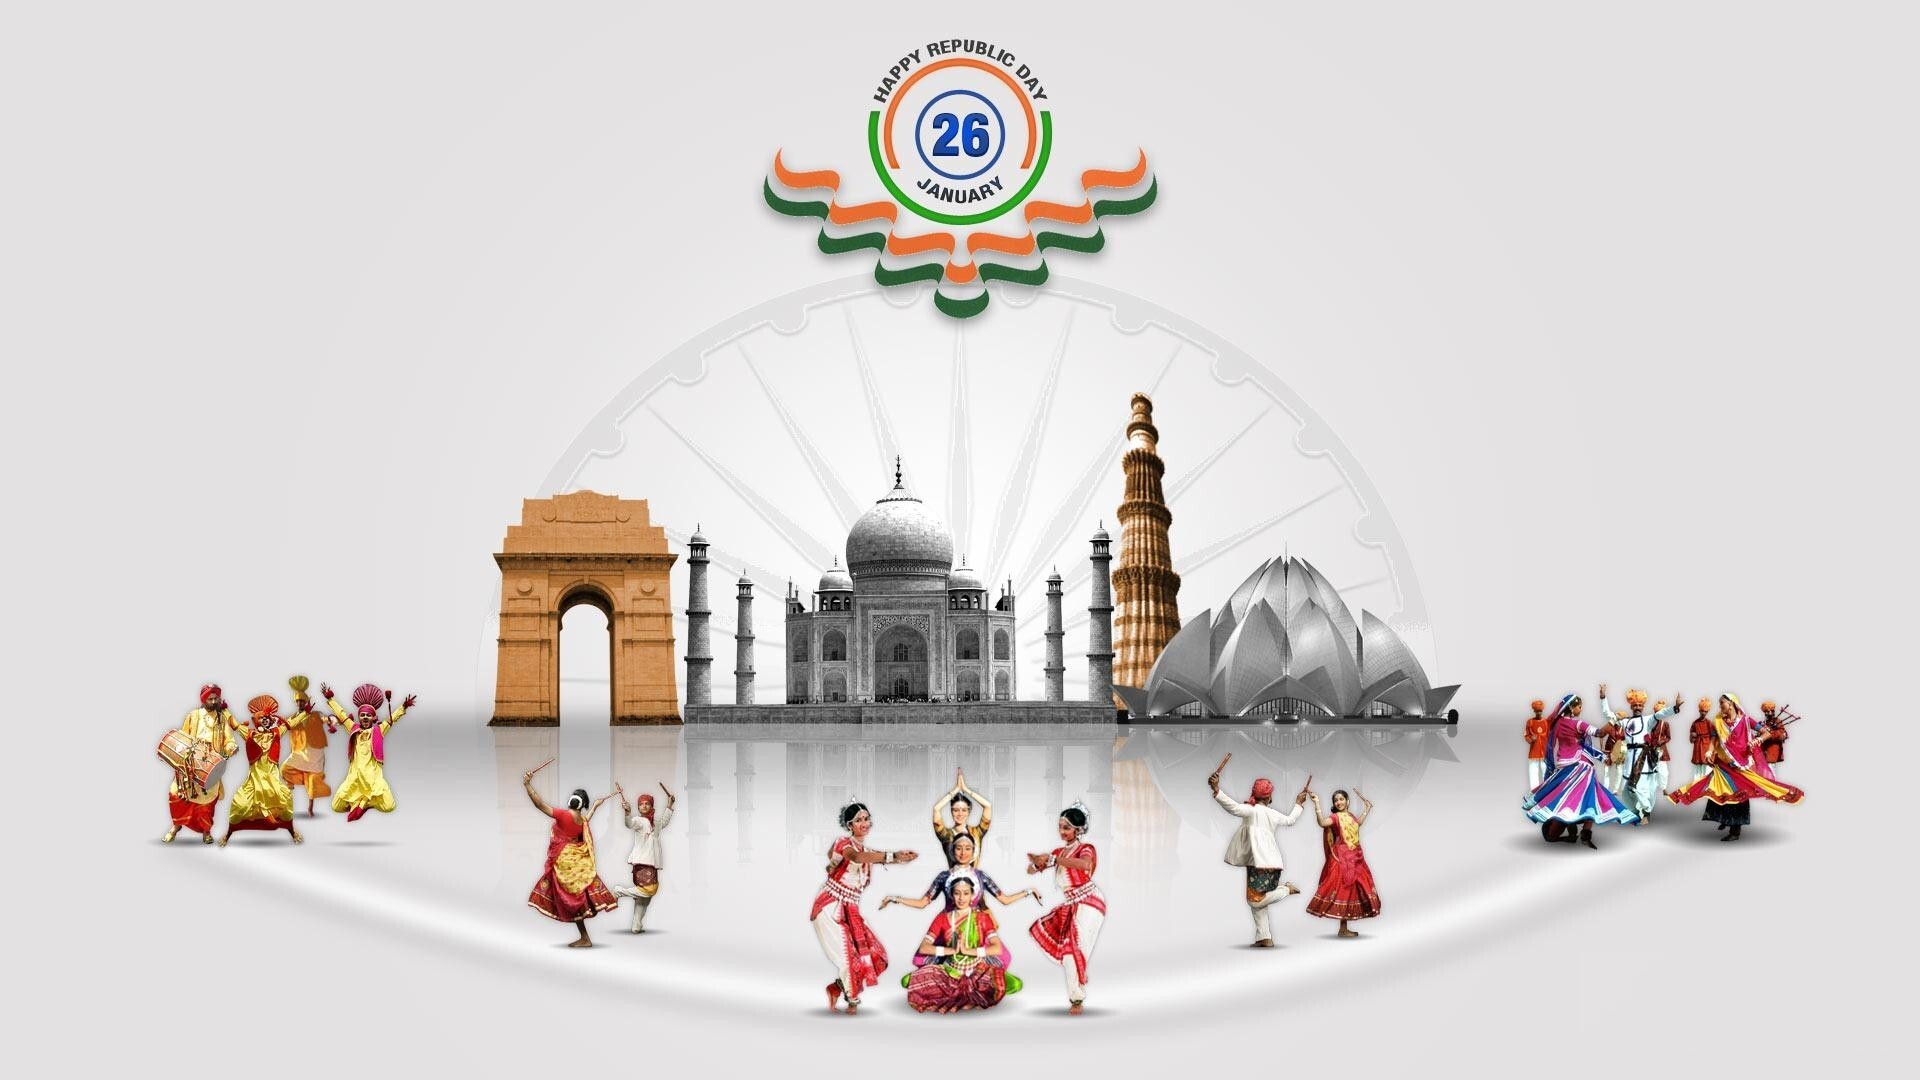 Amar jawan happy republic day wallpaper hd wallpapers related wallpapers thecheapjerseys Images